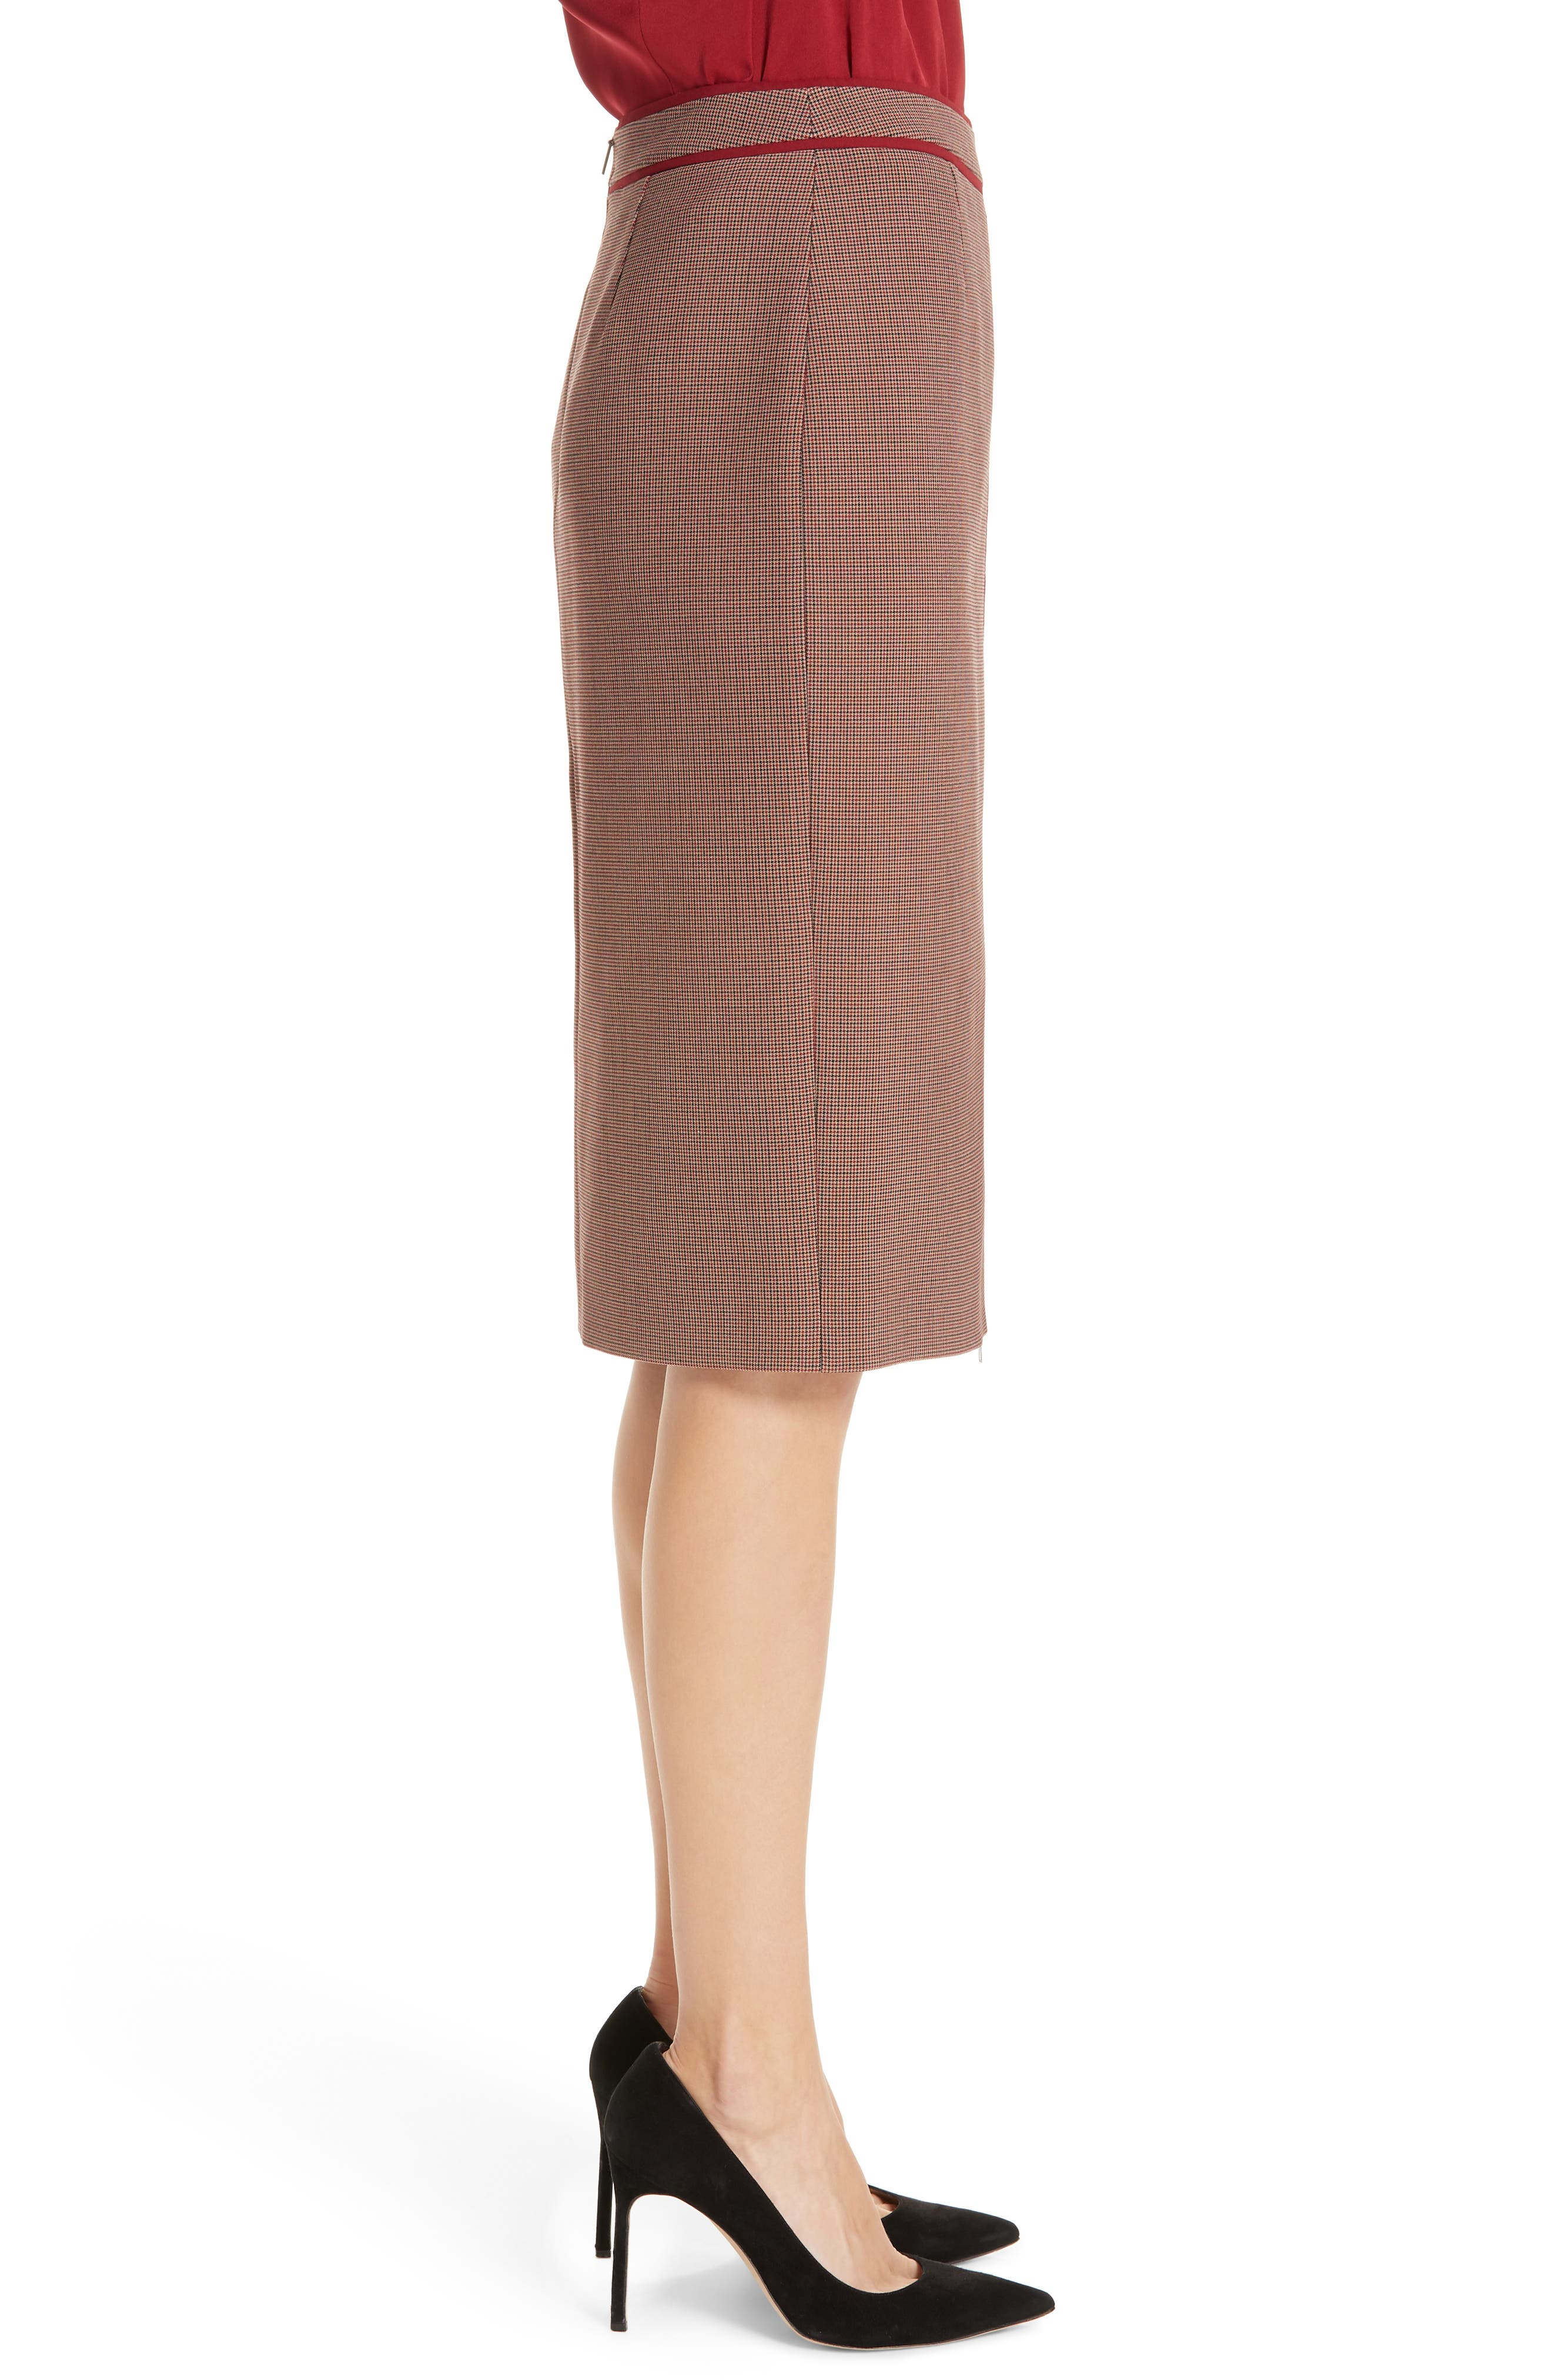 Voliviena Pencil Skirt,                             Alternate thumbnail 3, color,                             DARK RED CHECK